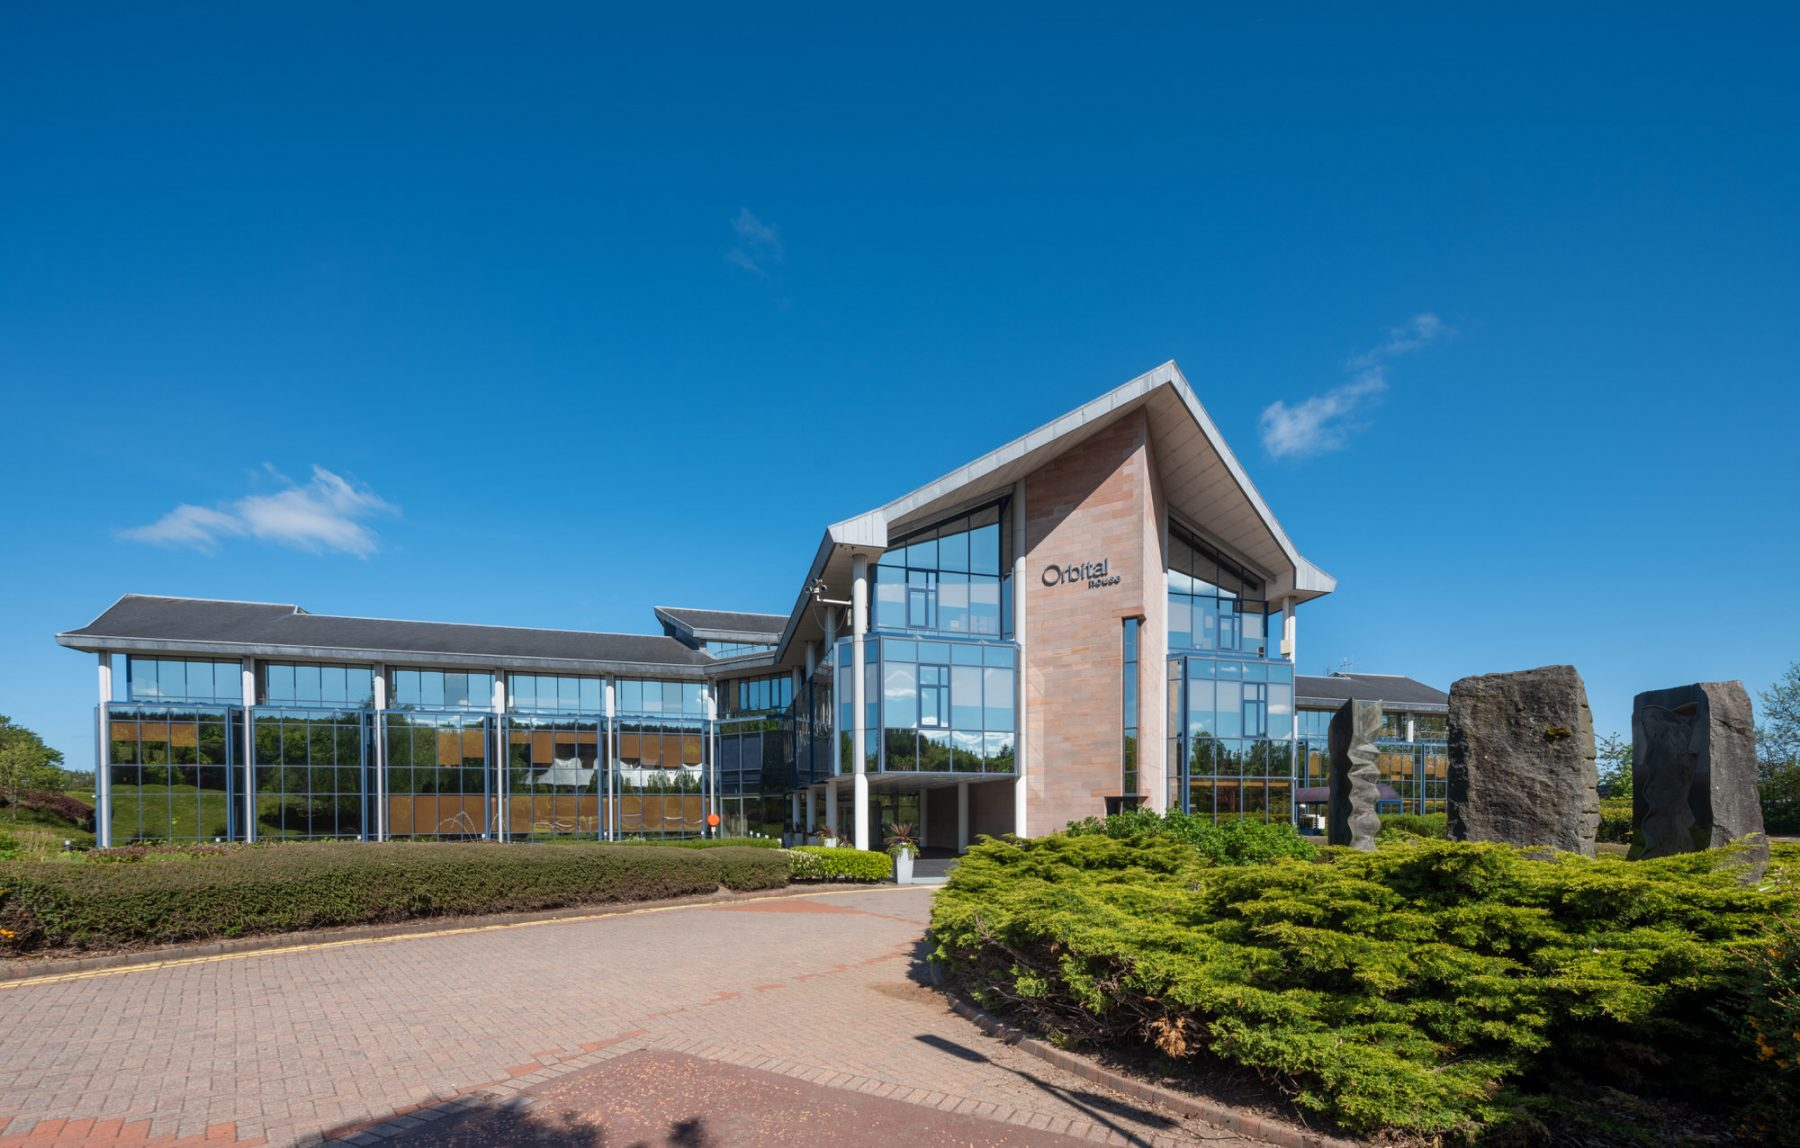 Exterior images of the refurbished office spaces in Orbital House in East Kilbride. May 20 | Image by McAteer Photo